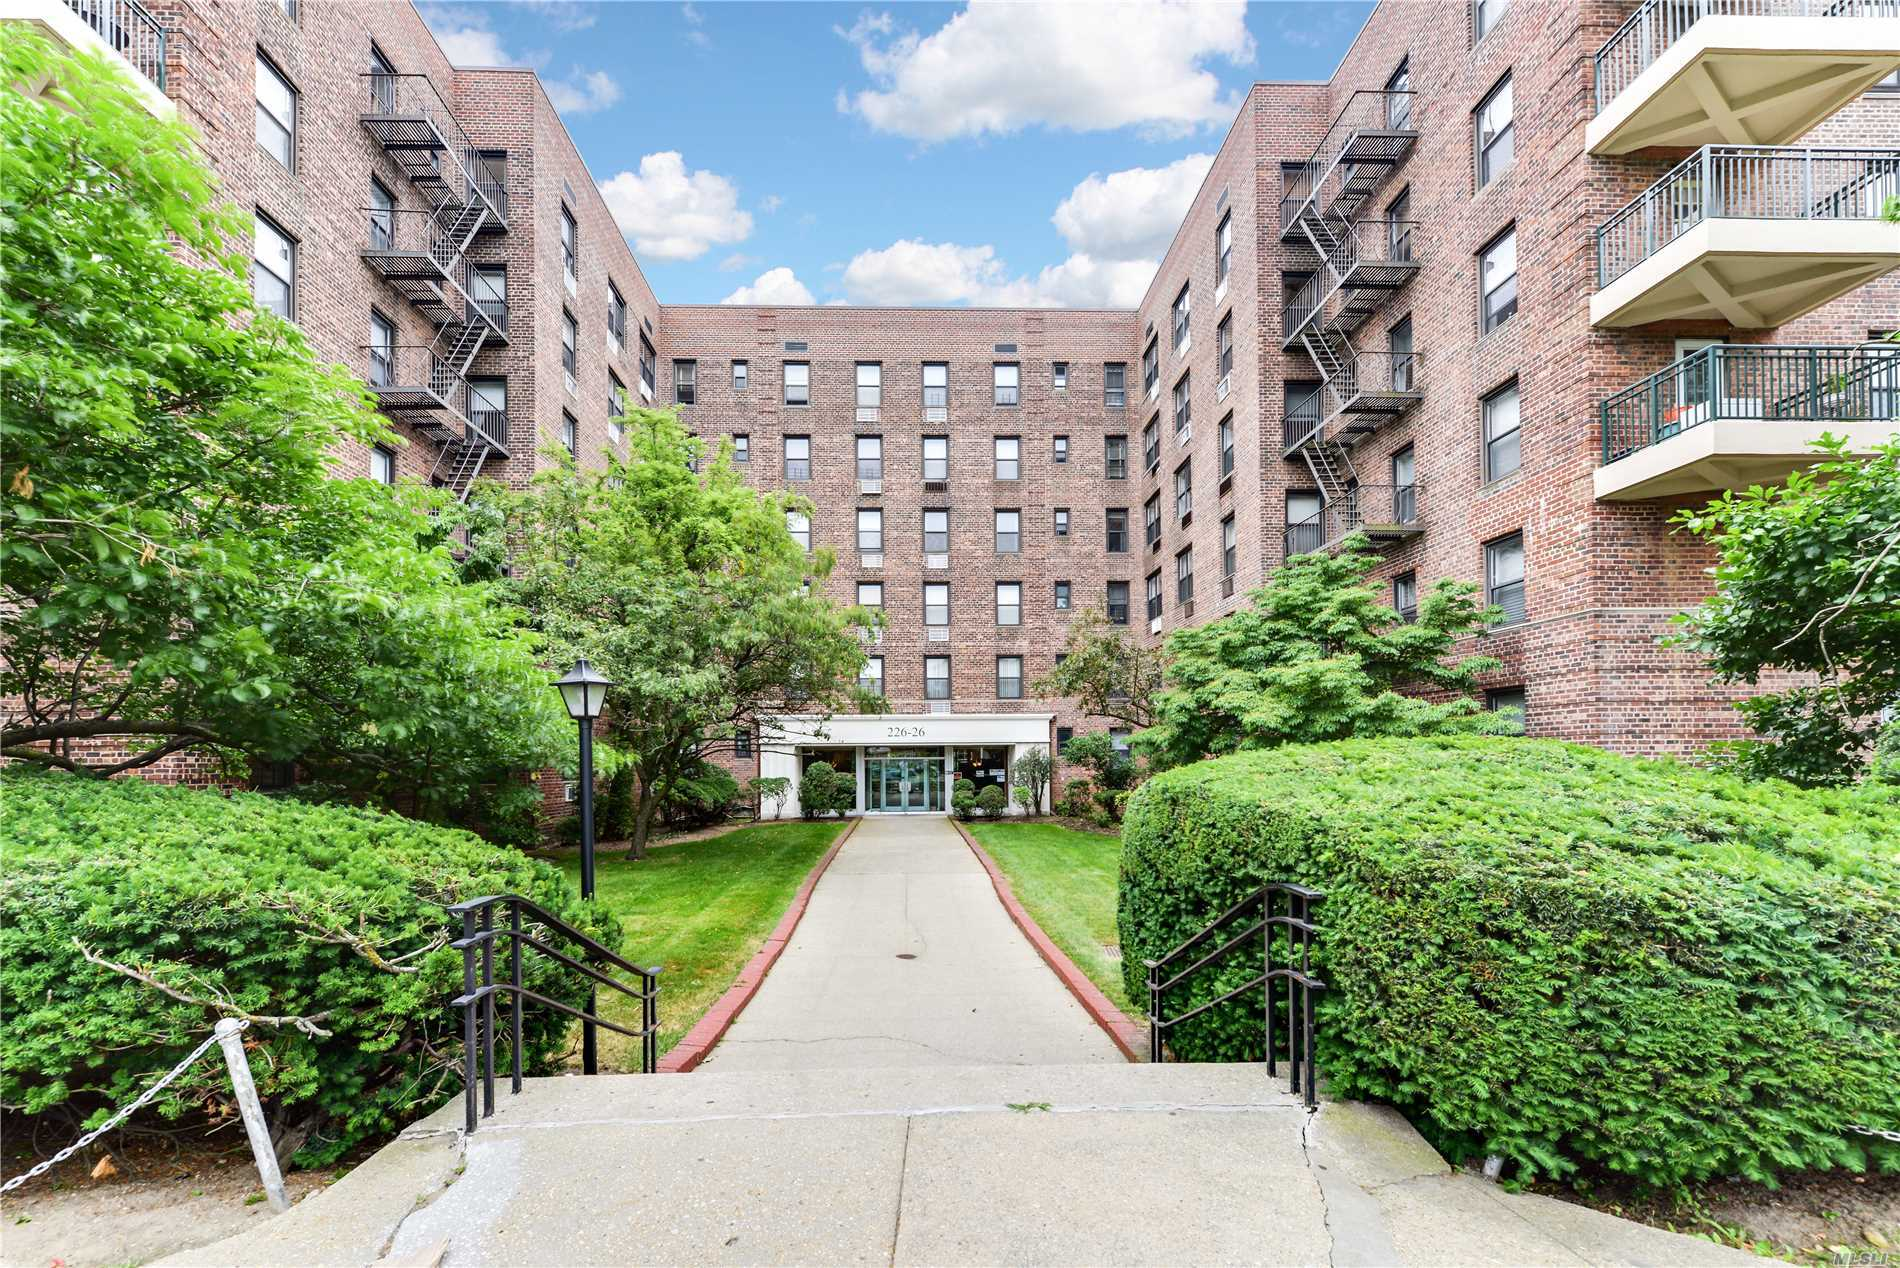 Beautiful And Spacious 2 Br/1Bath Apartment With Exposed Brick Wall. Private Parking, Laundry Rm. Plenty Of Storage Room In The Basement. The Unit Is Conveniently Located Near Express Buses To Manhattan And Near All Major Highways. It's A Must See Apartment!